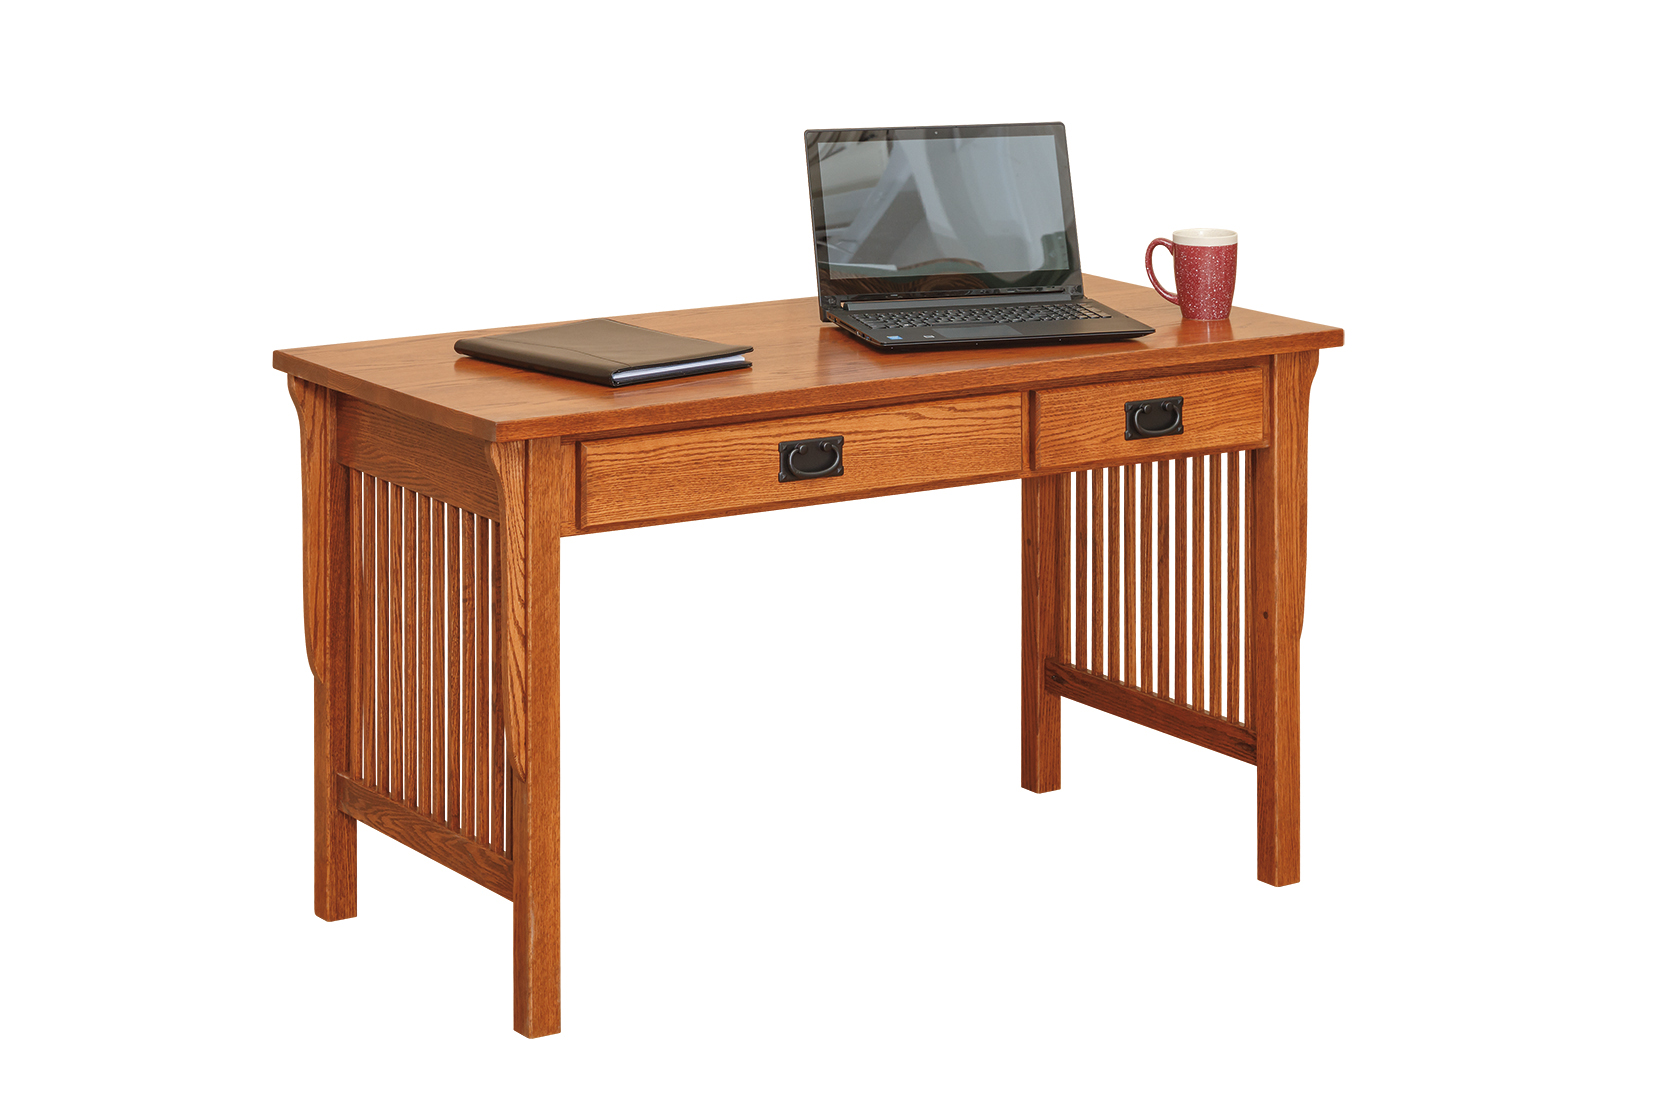 Charmant Amish Furniture Connections